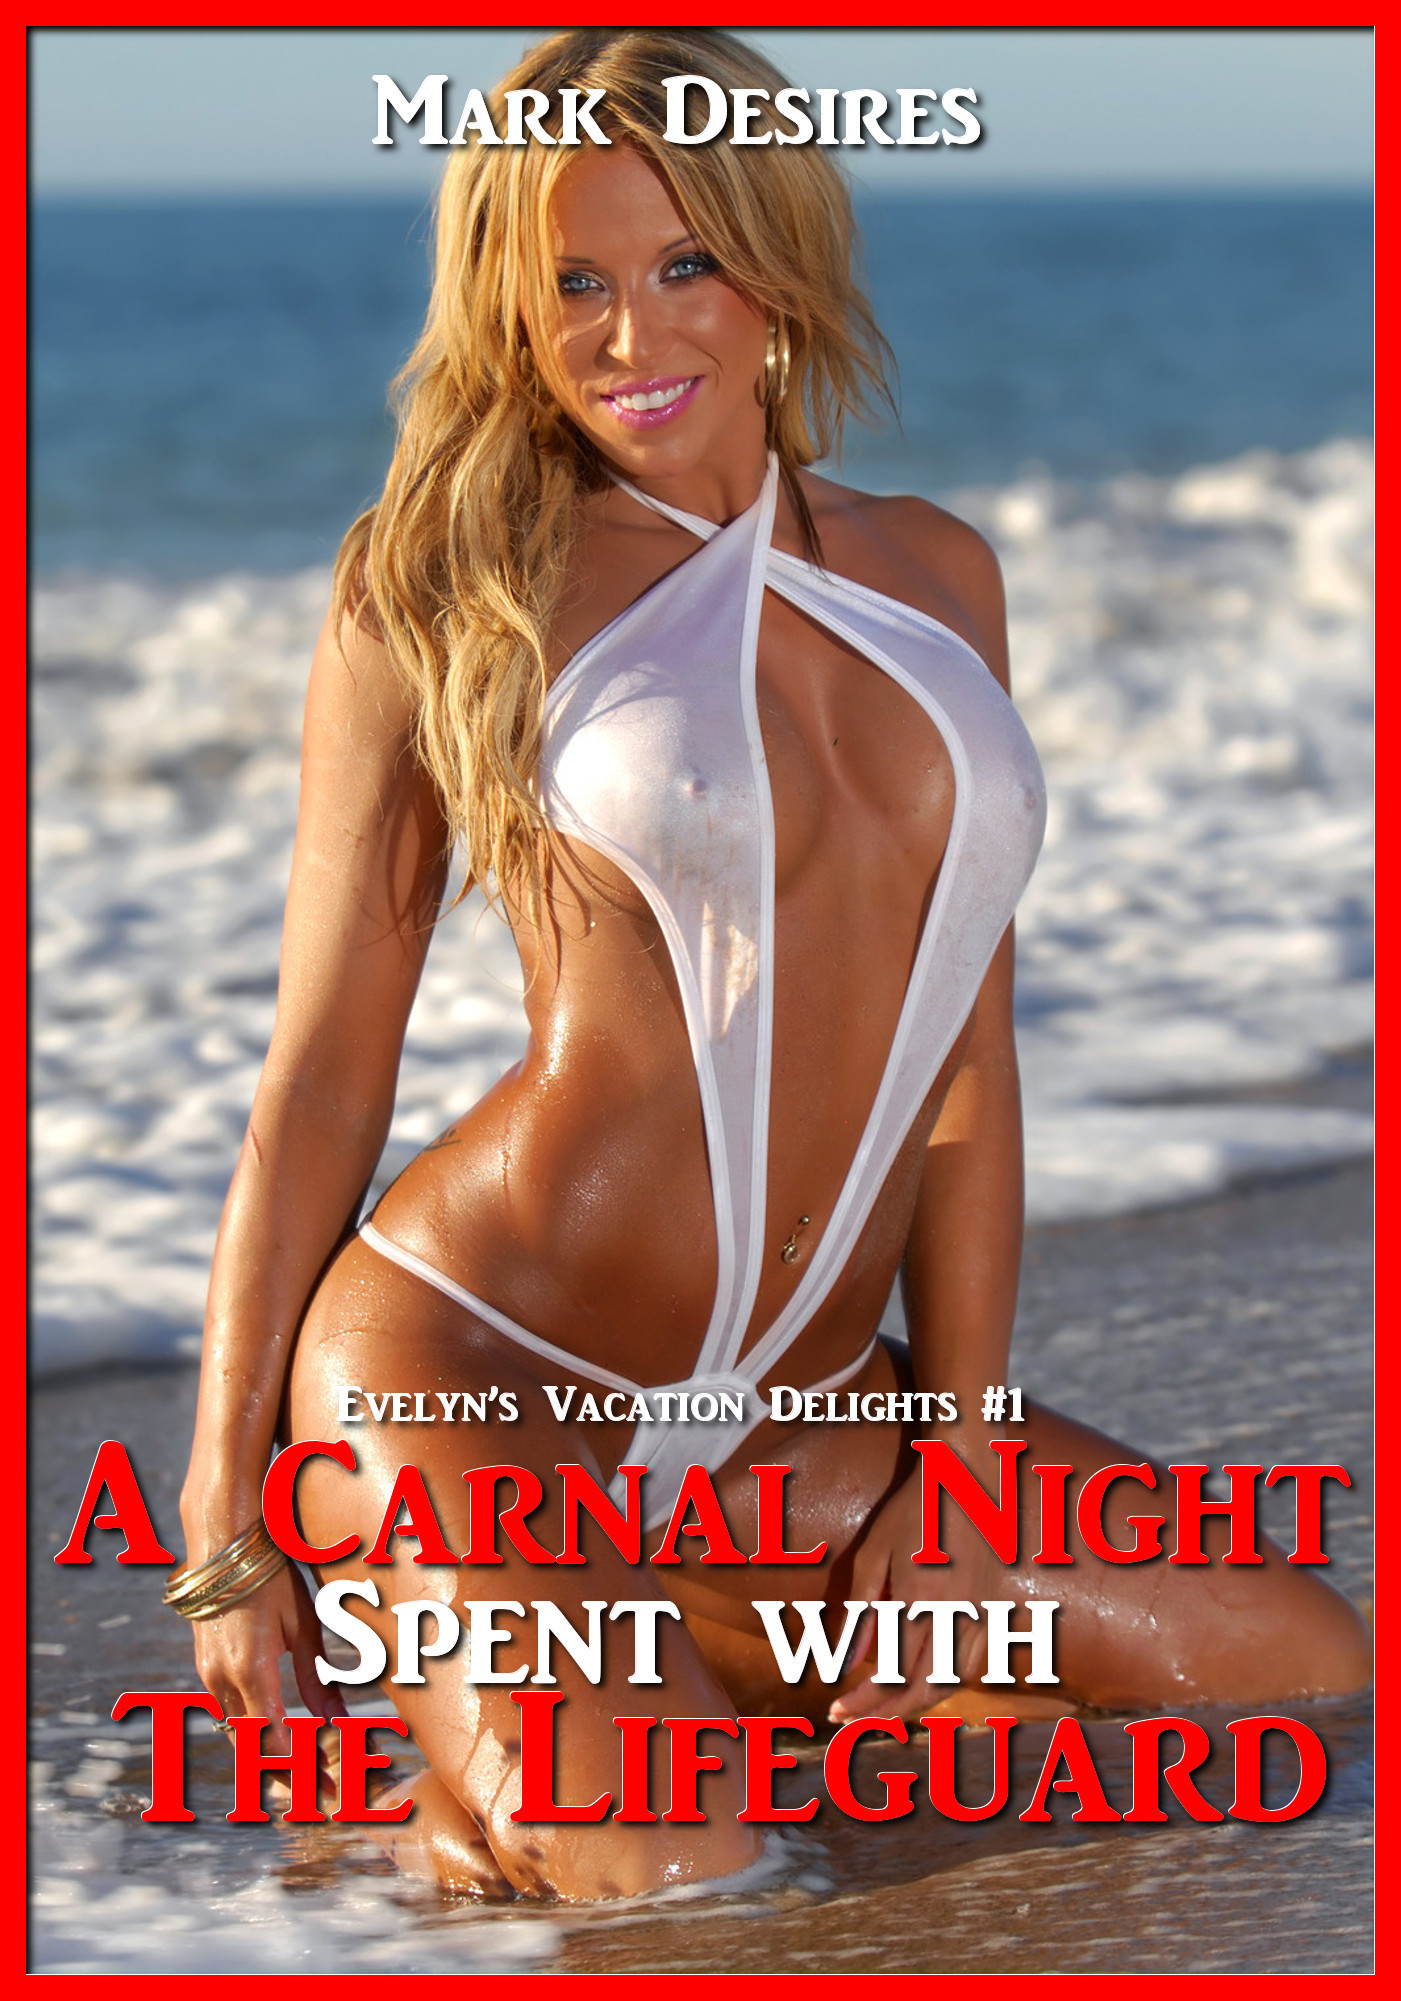 A Carnal Night Spent with the Lifeguard Mark Desires